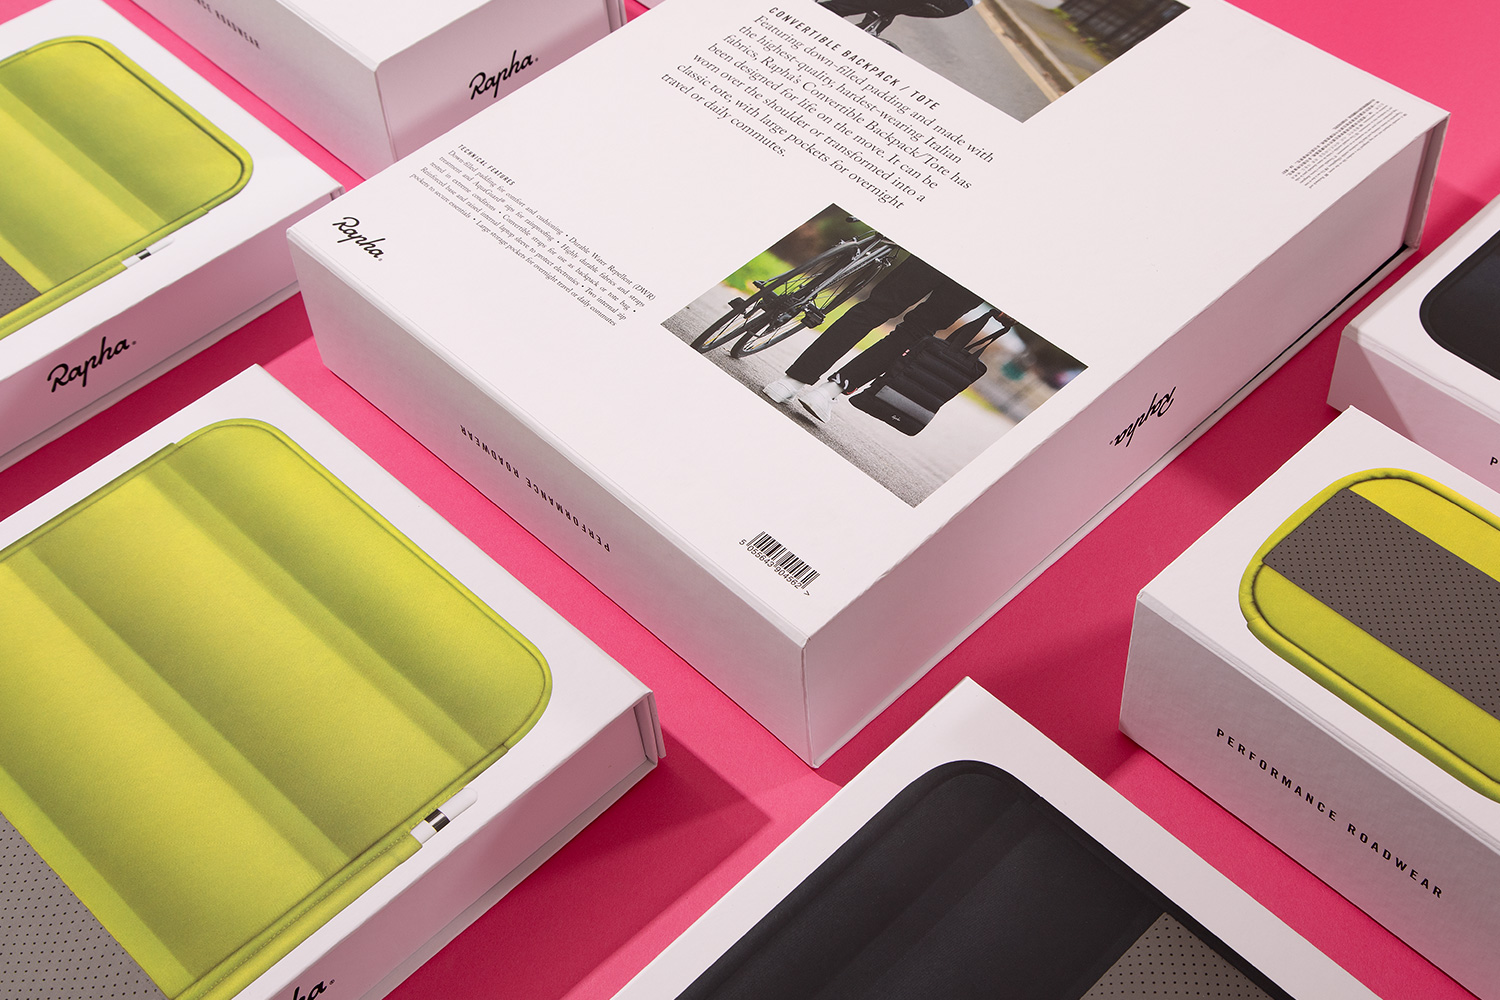 Progress Packaging Partners Rapha Apple Cycling Apparel Luxury Technology Ipone Ipad Laptop Luggage Mobile Phone Cell Store Bespoke Collapsible Retail 2.1